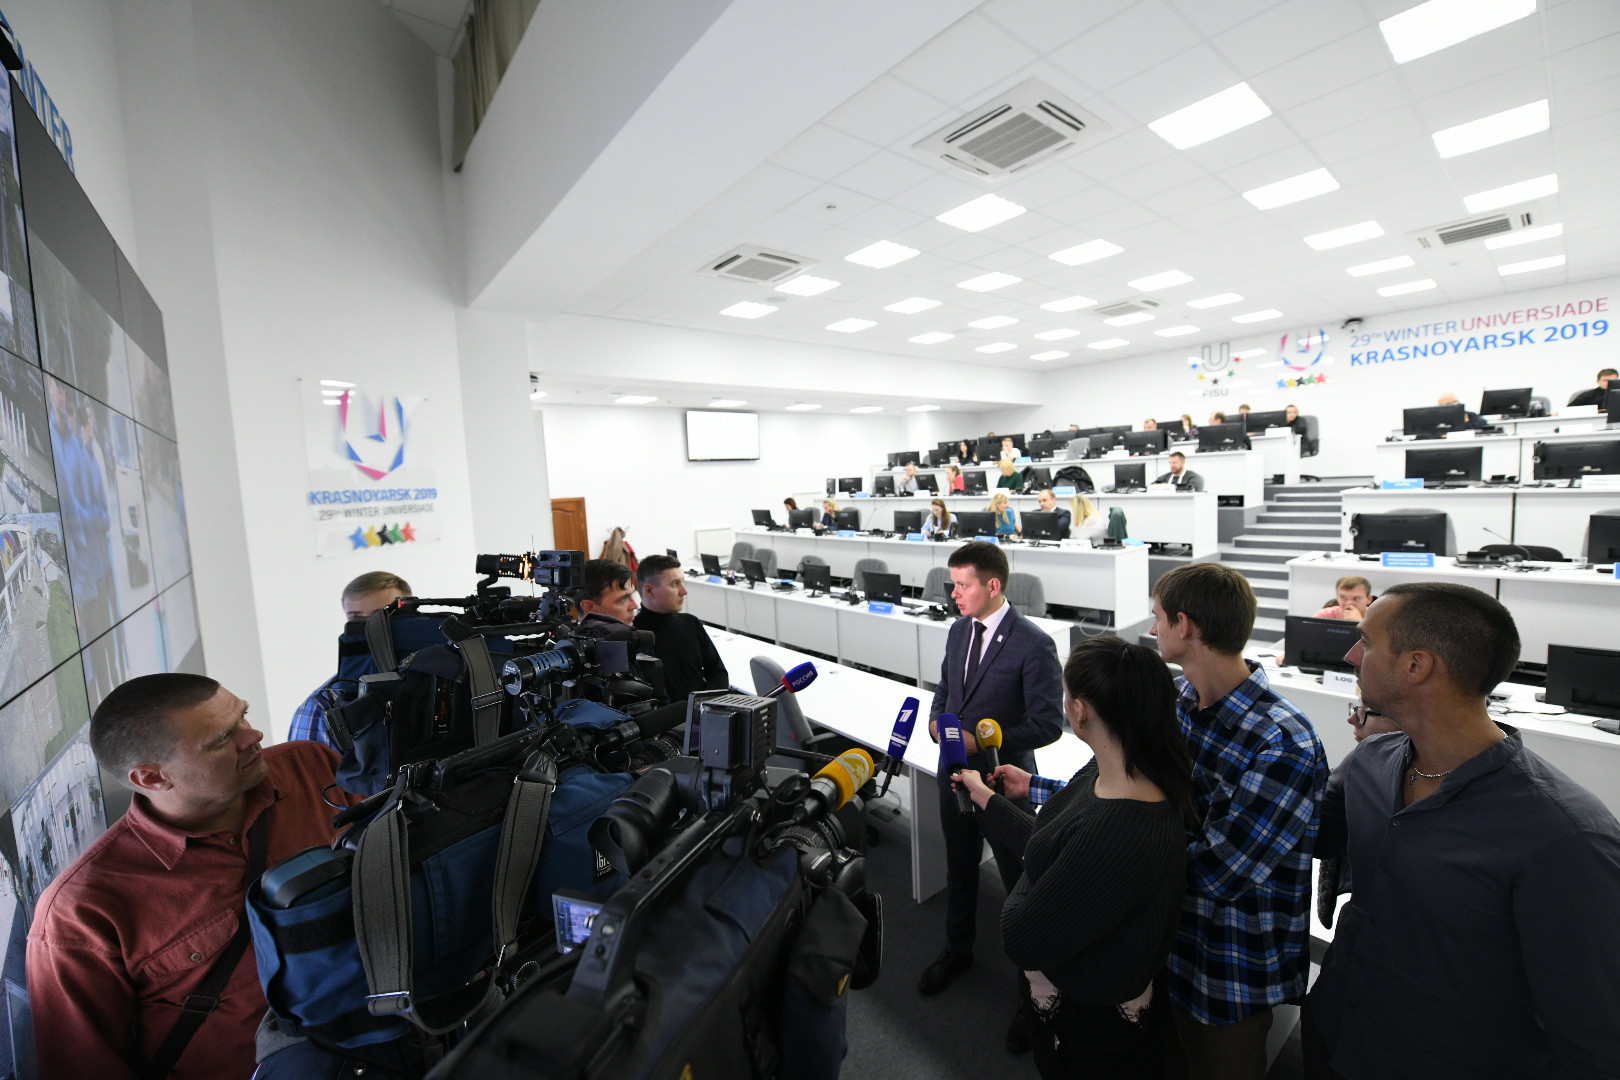 The Centre, which features a wall of TV screens to monitor athletes and fans, is at the Siberian Federal University ©Krasnoyarsk 2019